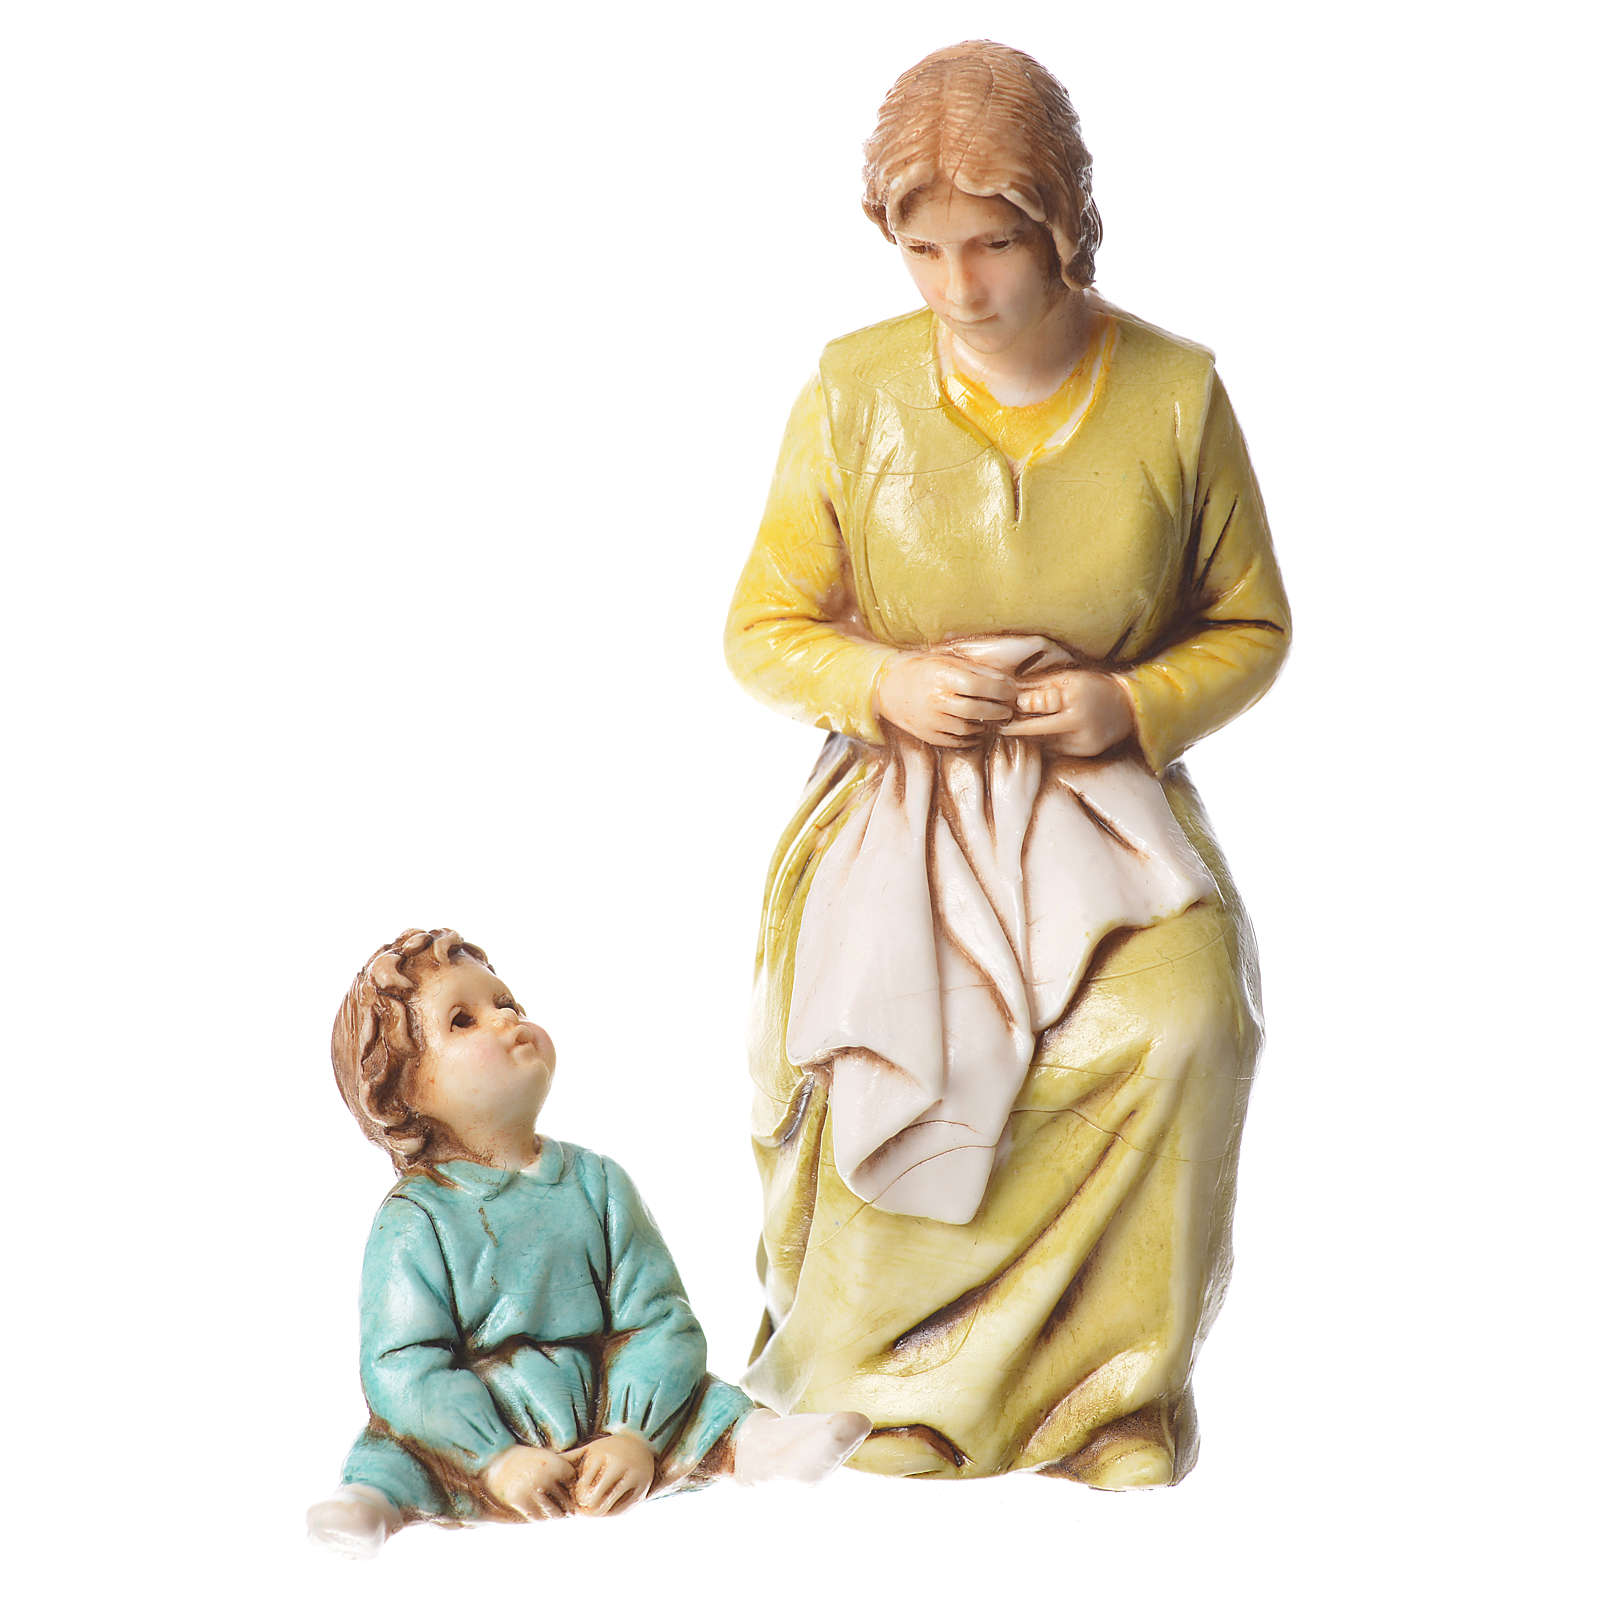 Mending woman and child, nativity figurines, 10cm Moranduzzo 4